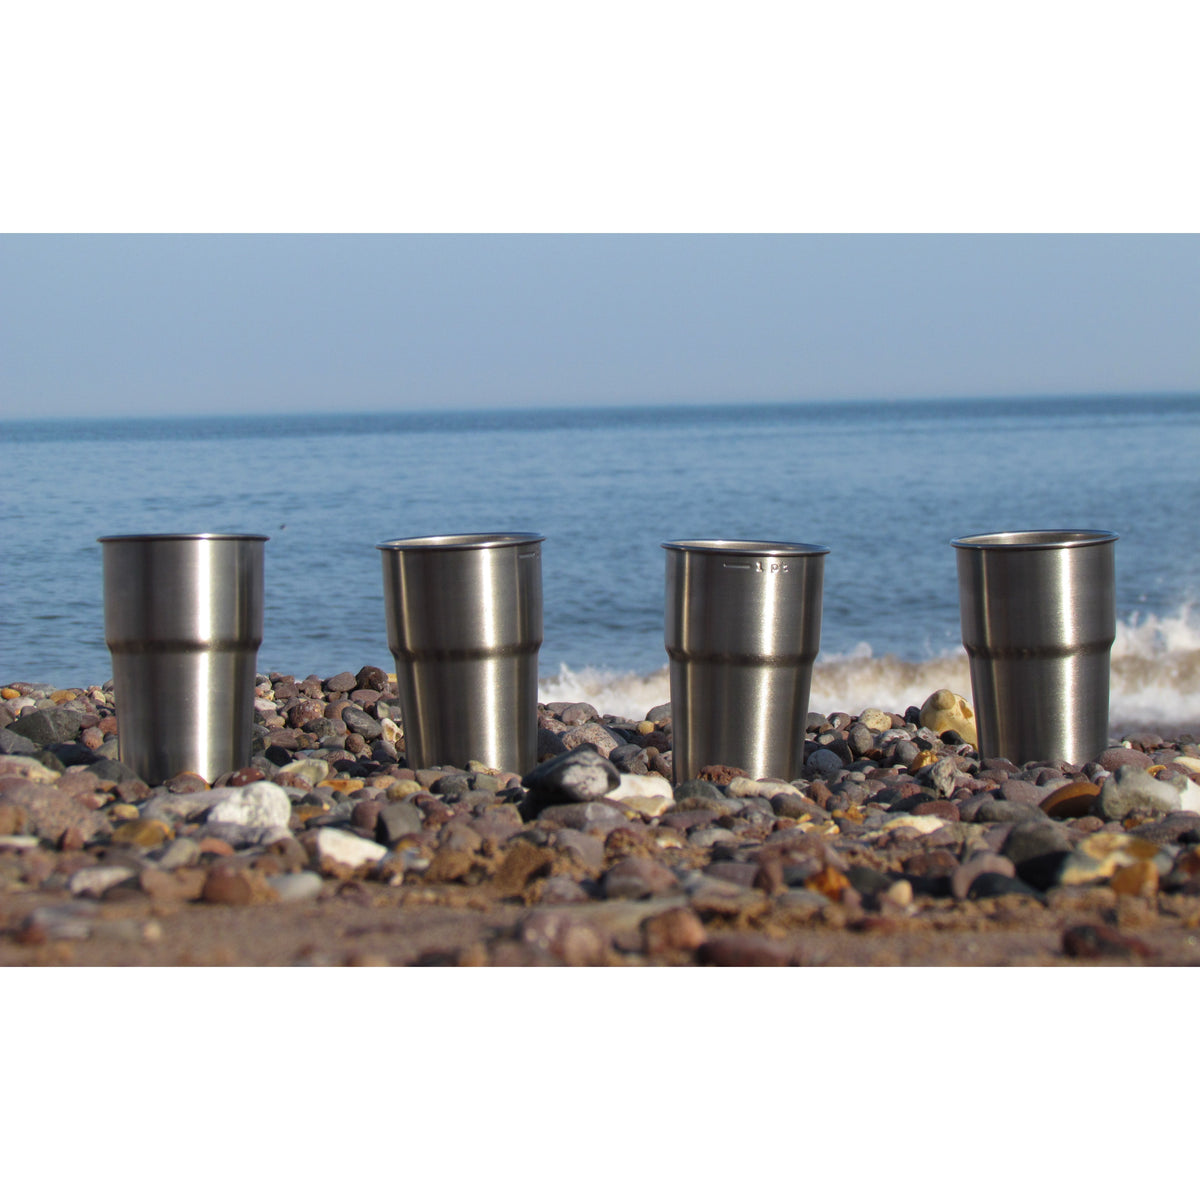 4 x Stainless Steel Eco Pint Cups on Beach